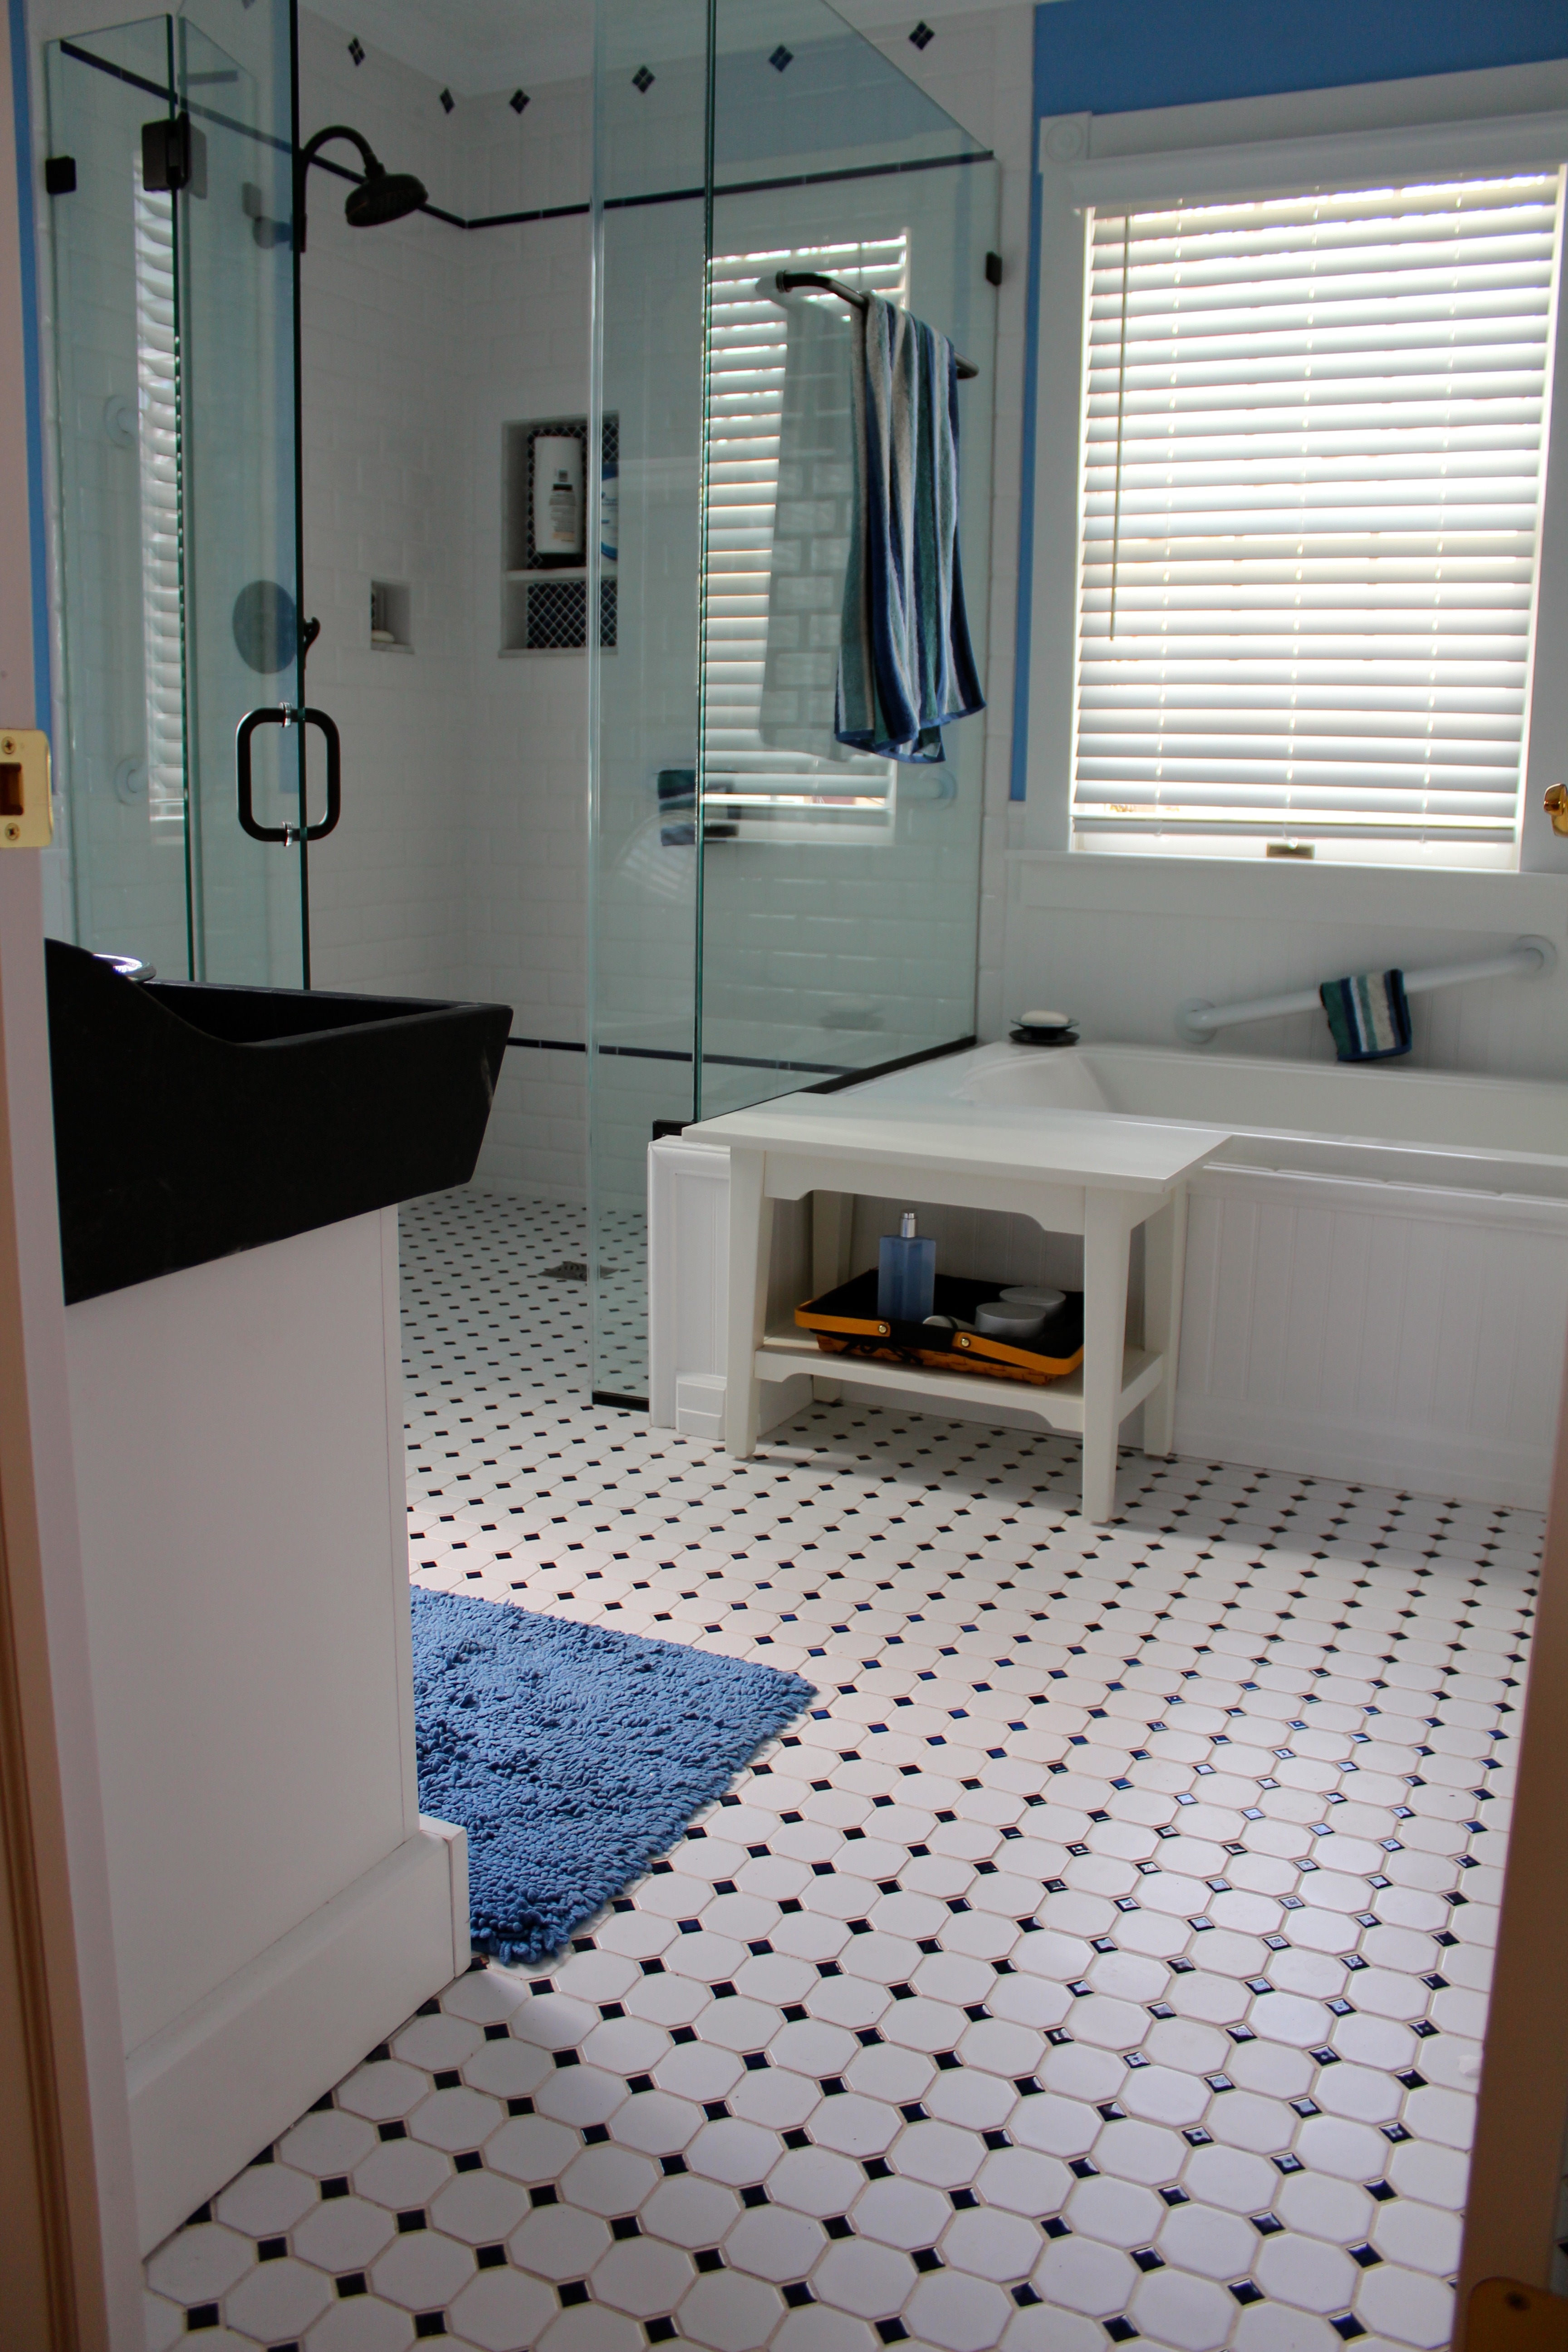 Vintage black and white bathroom ideas - Blue And White Tile Floor Bathroom Furniture Ideas